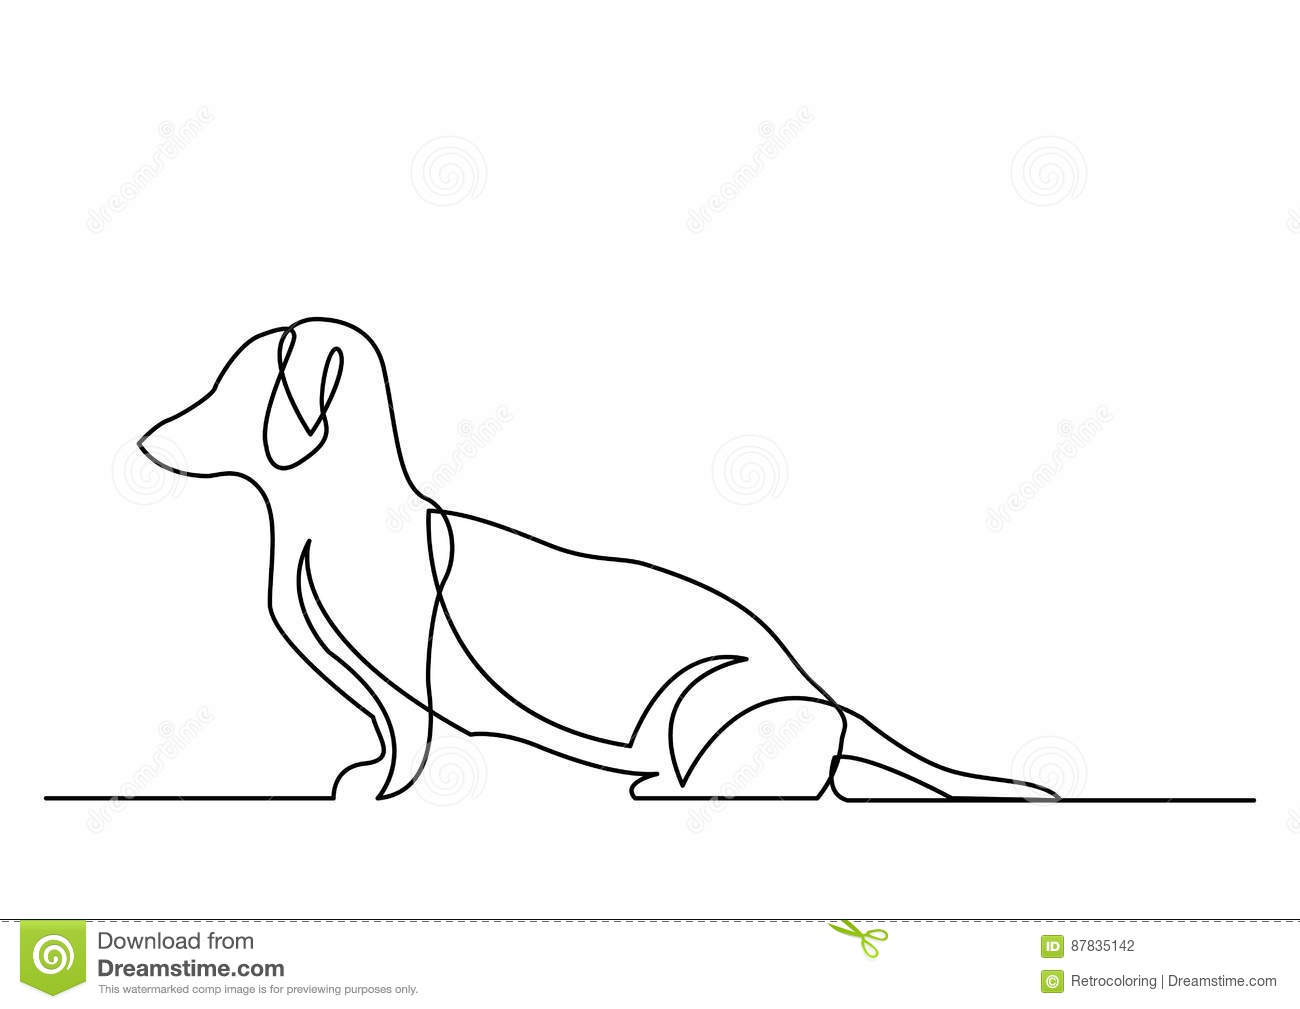 Continuous Line Drawing Easy : Continuous line drawing of dachshund dog stock vector